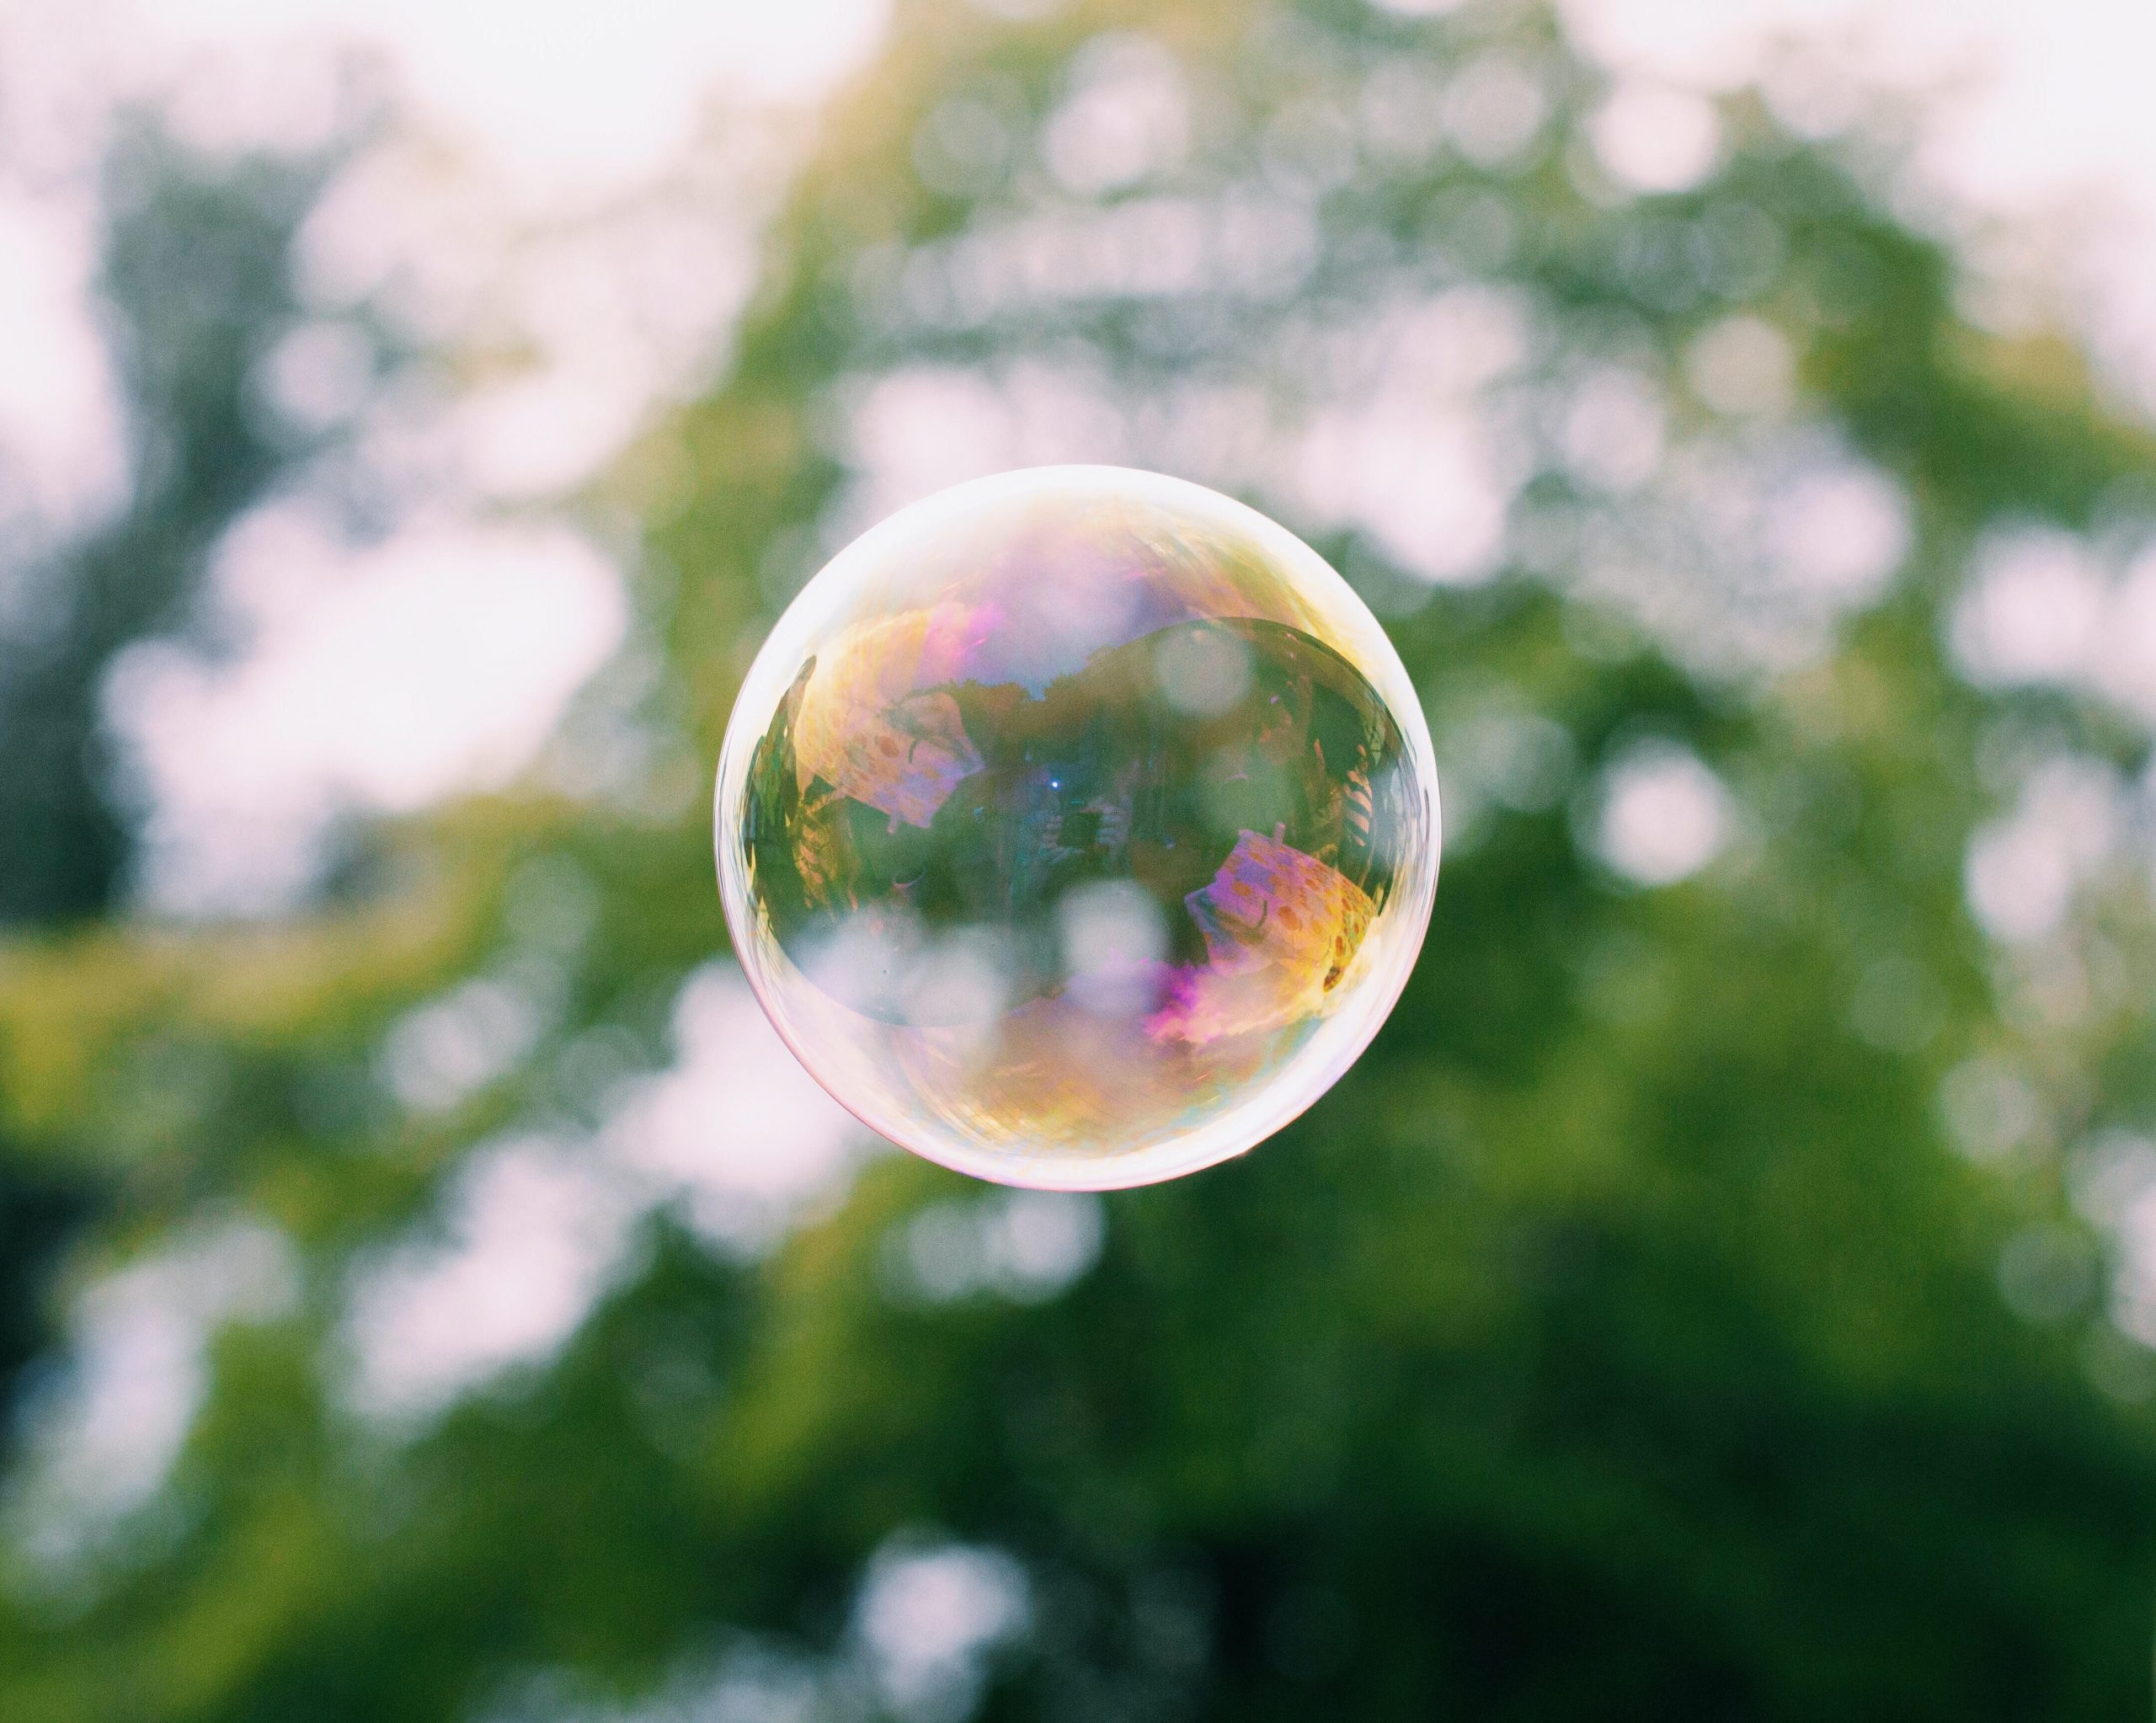 a bubble with blurred tree in background